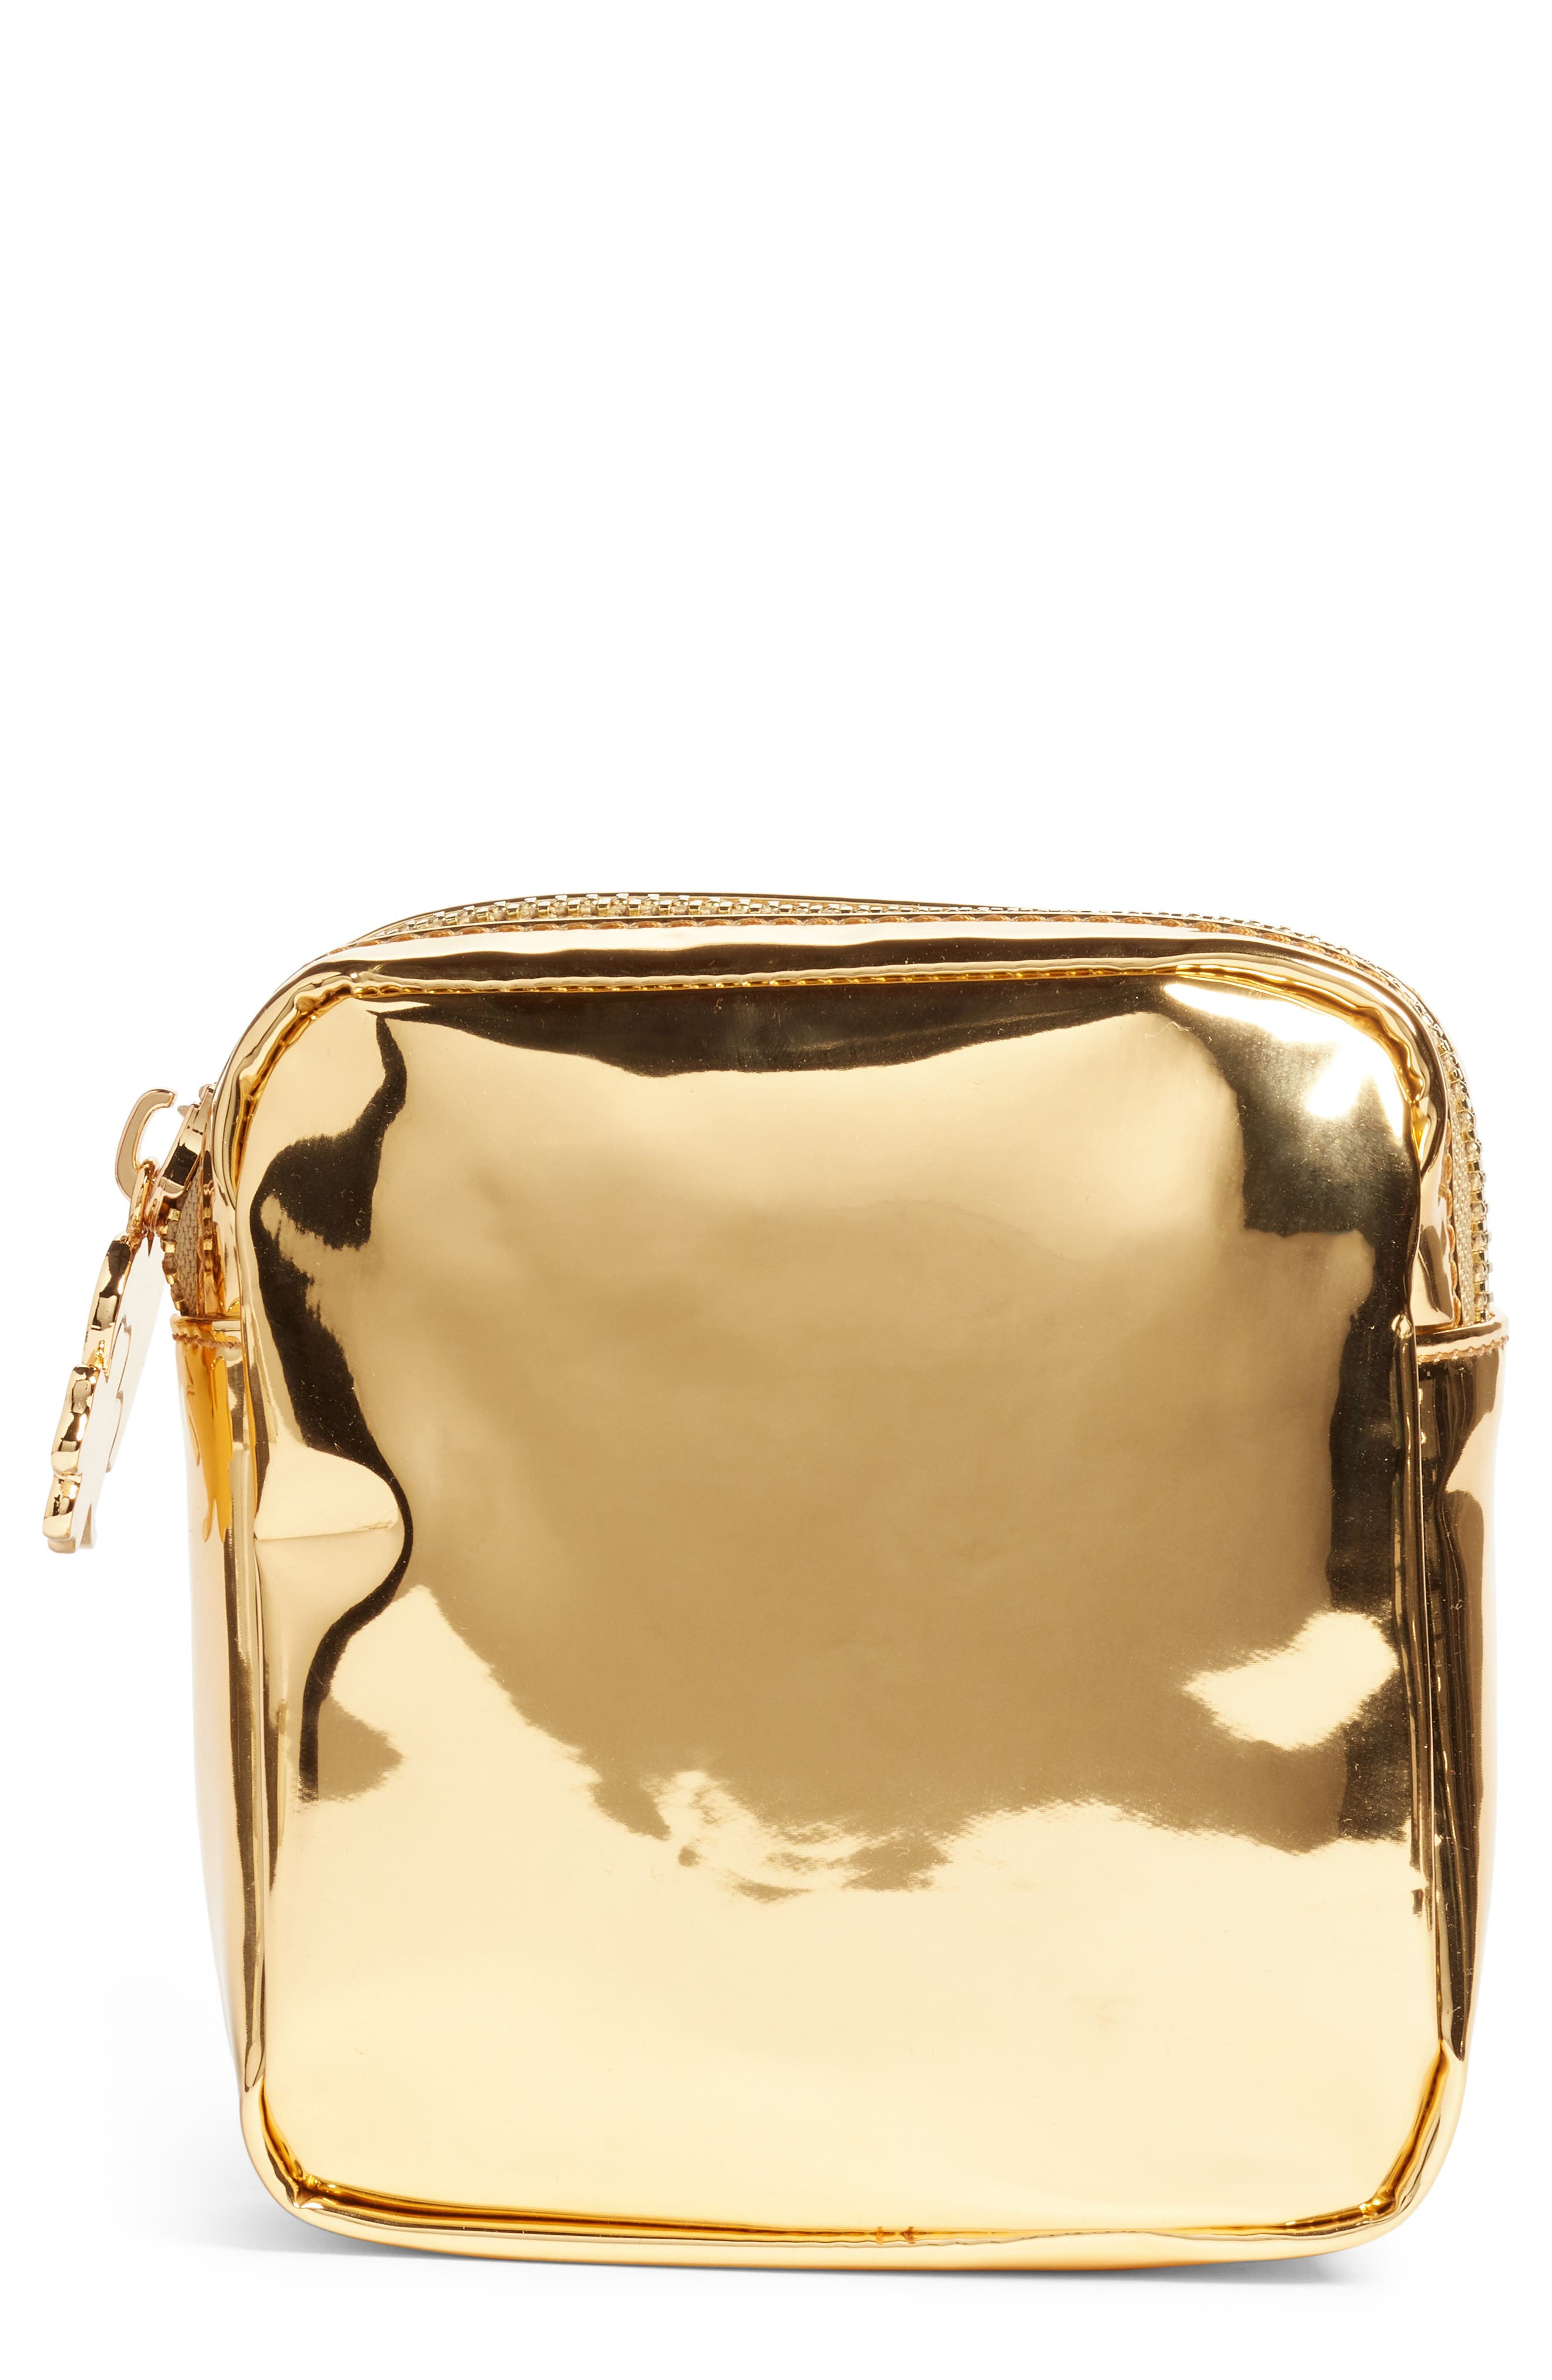 STONEY CLOVER LANE Patent Mini Makeup Pouch in Gold